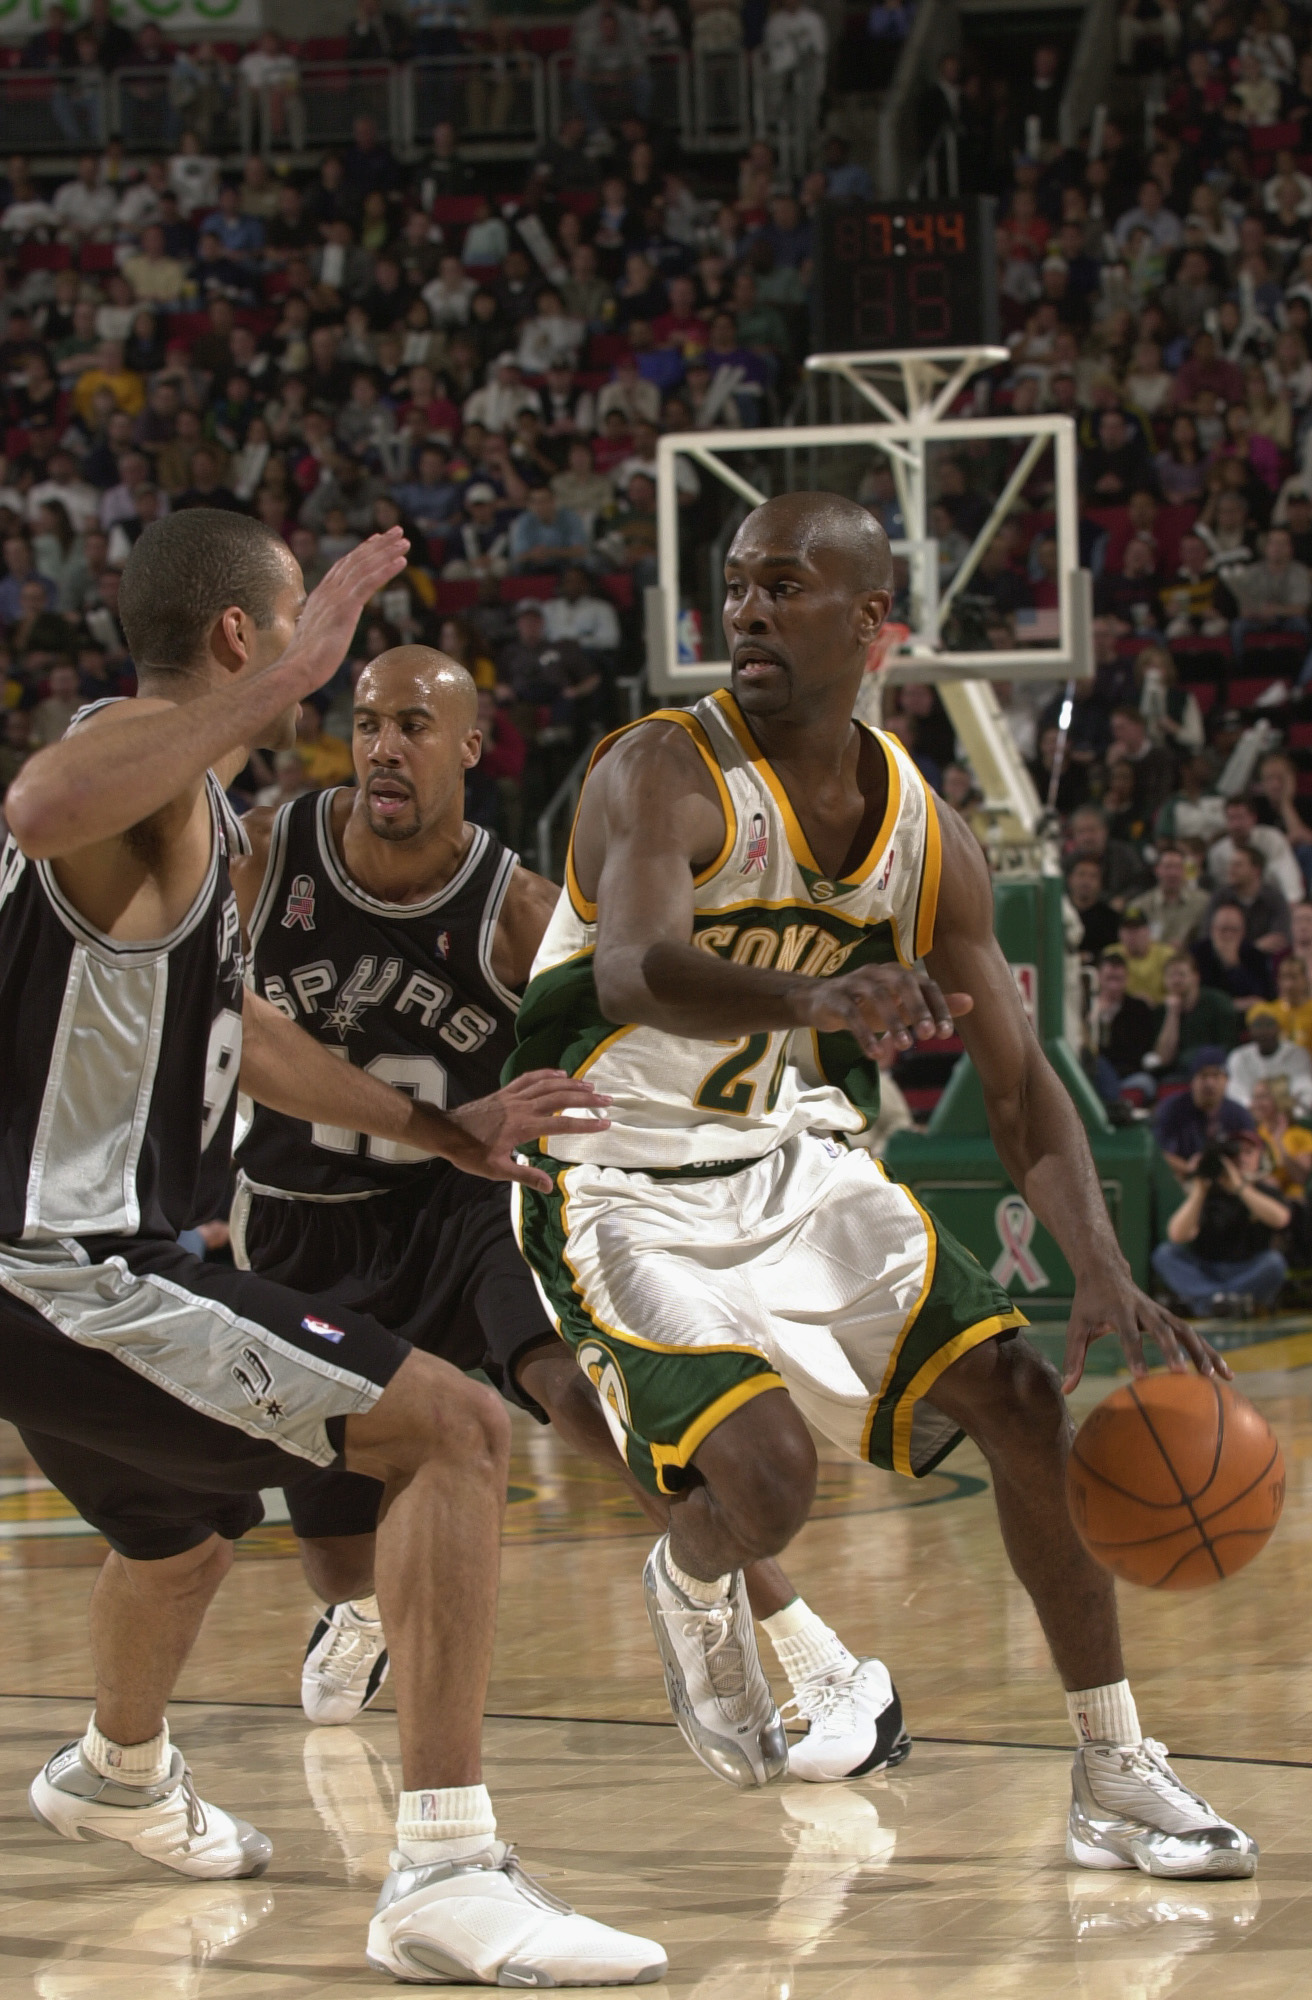 SEATTLE - MAY 1:  Point guard Gary Payton #20 of the Seattle SuperSonics drives past point guard Tony Parker #9 of the San Antonio Spurs during game four of the Western Conference Quarterfinals during the 2002 NBA Playoffs at Key Arena in Seattle, Washing